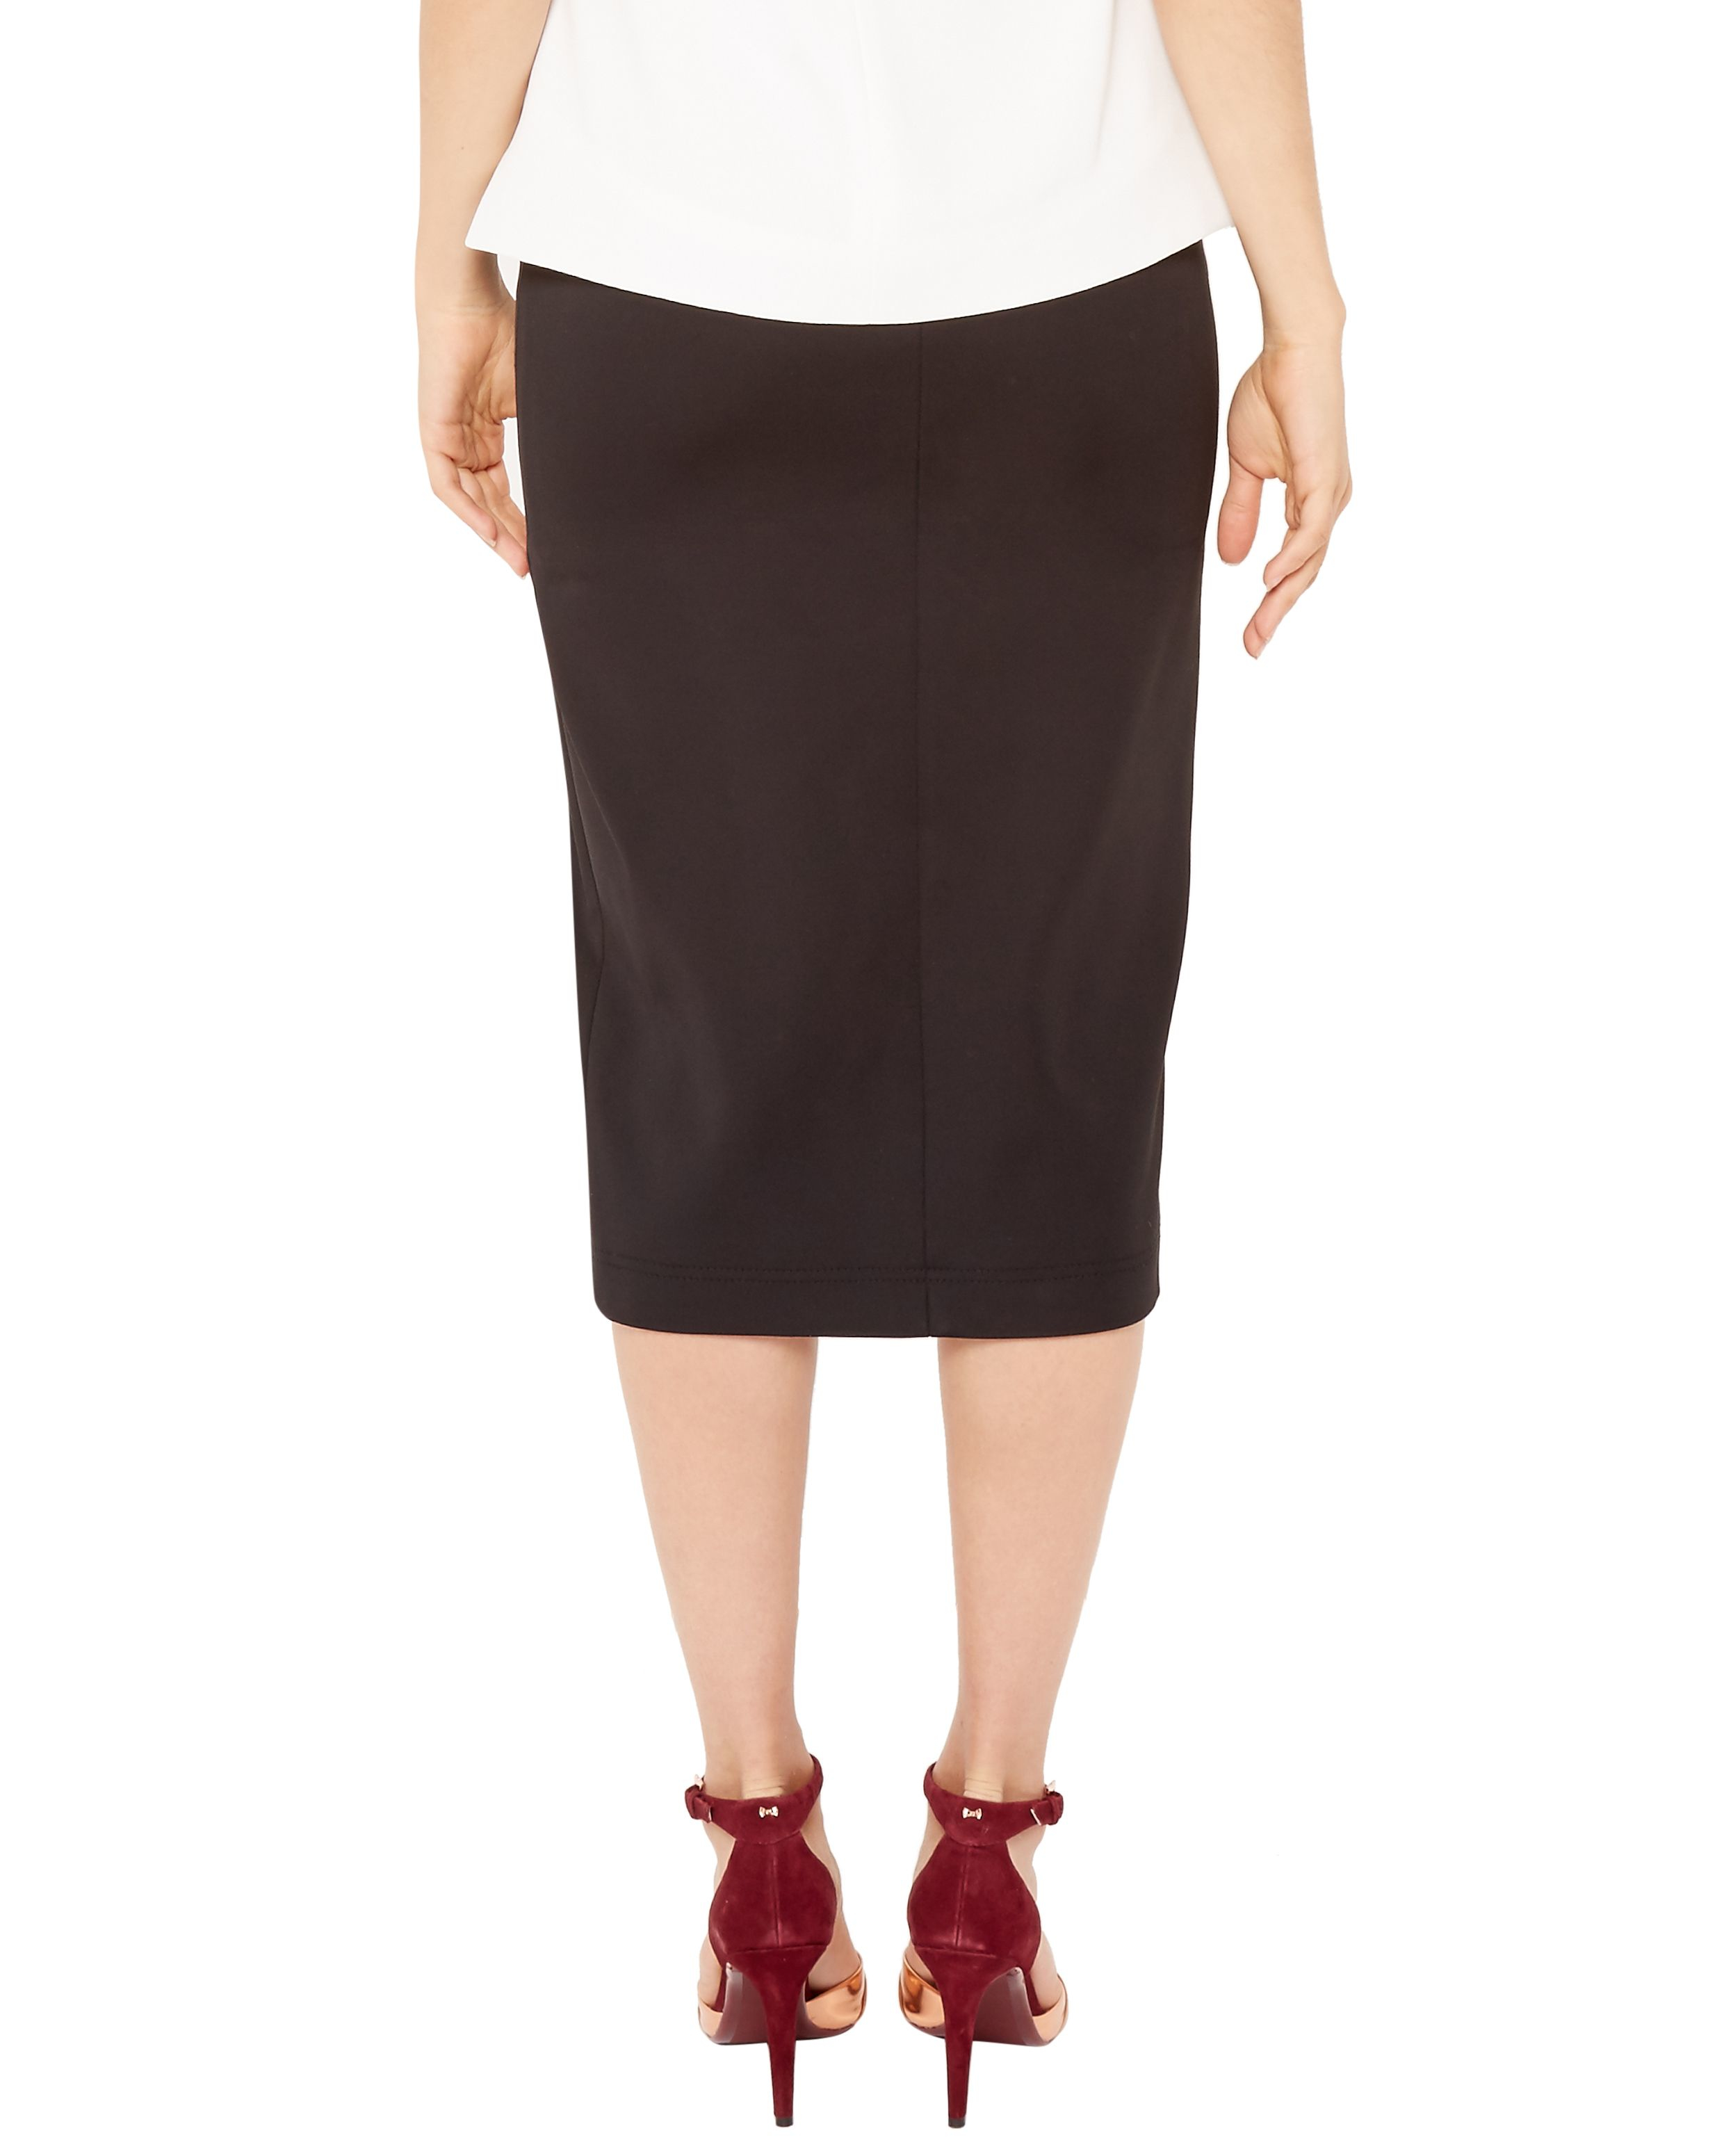 Ted baker Gemia High Waisted Pencil Skirt in Black